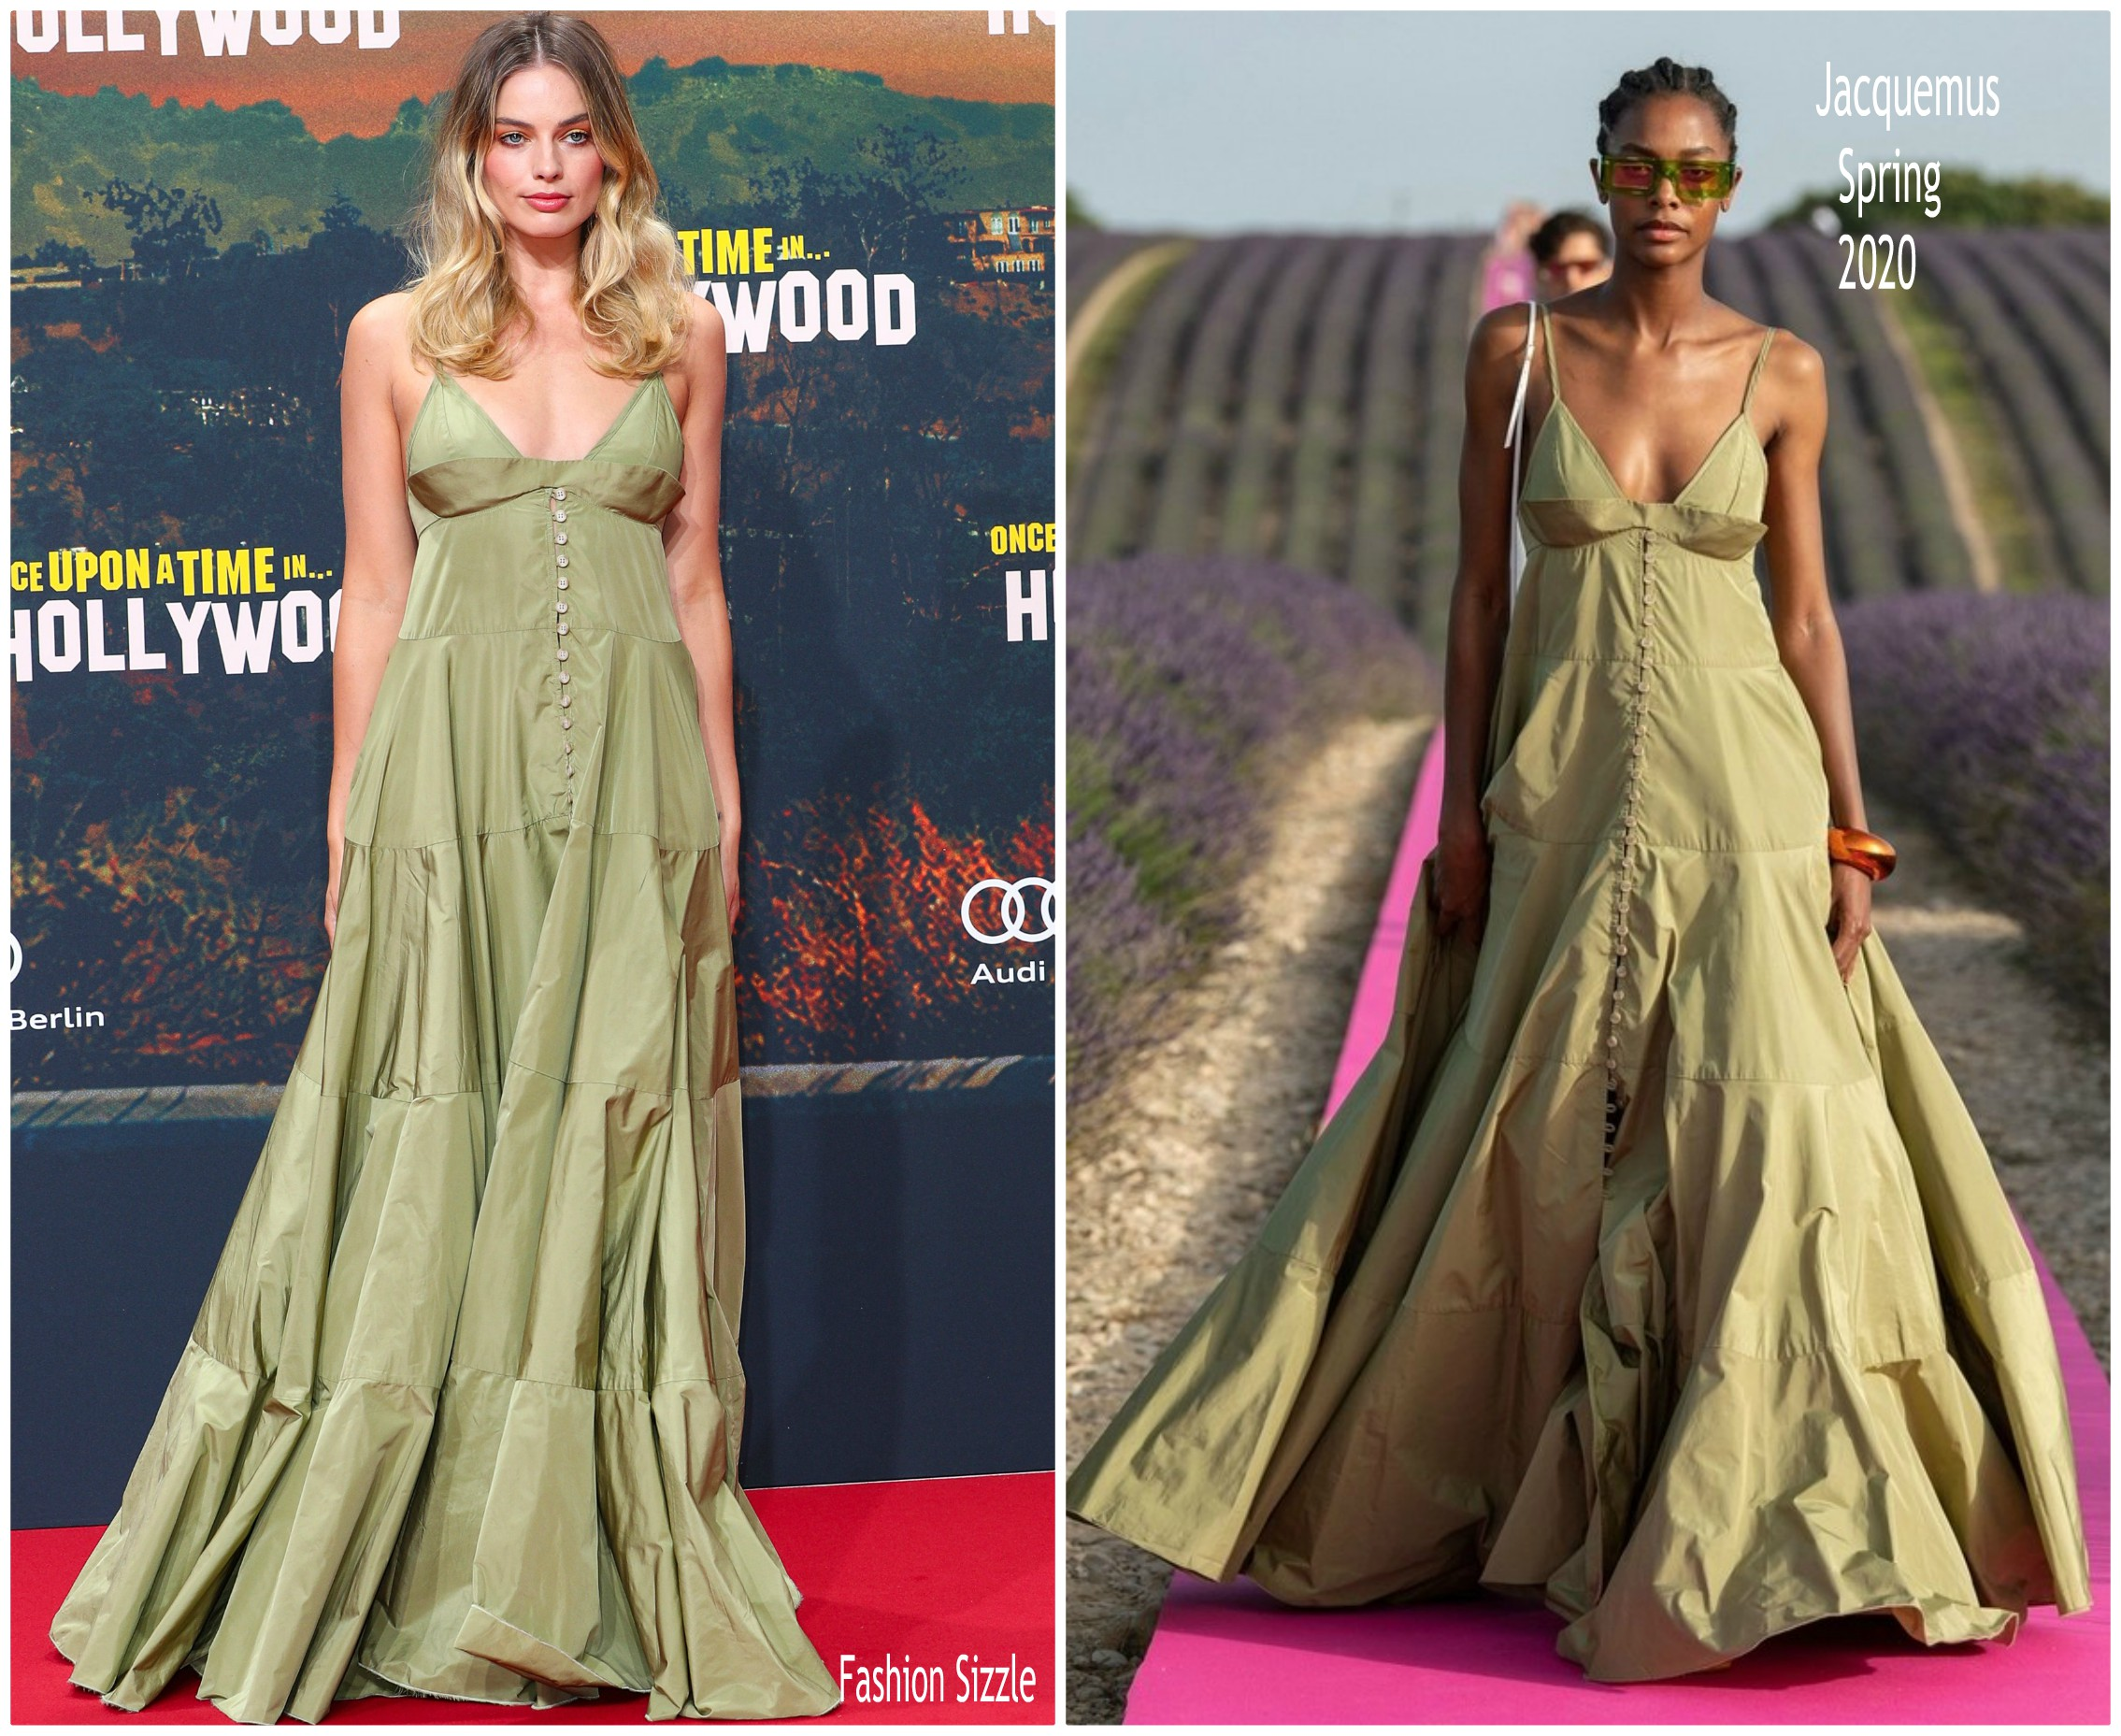 margot-robbie-in-jacquemus-the-berlin-premiere-of-once-upon-a-time-in-hollywood